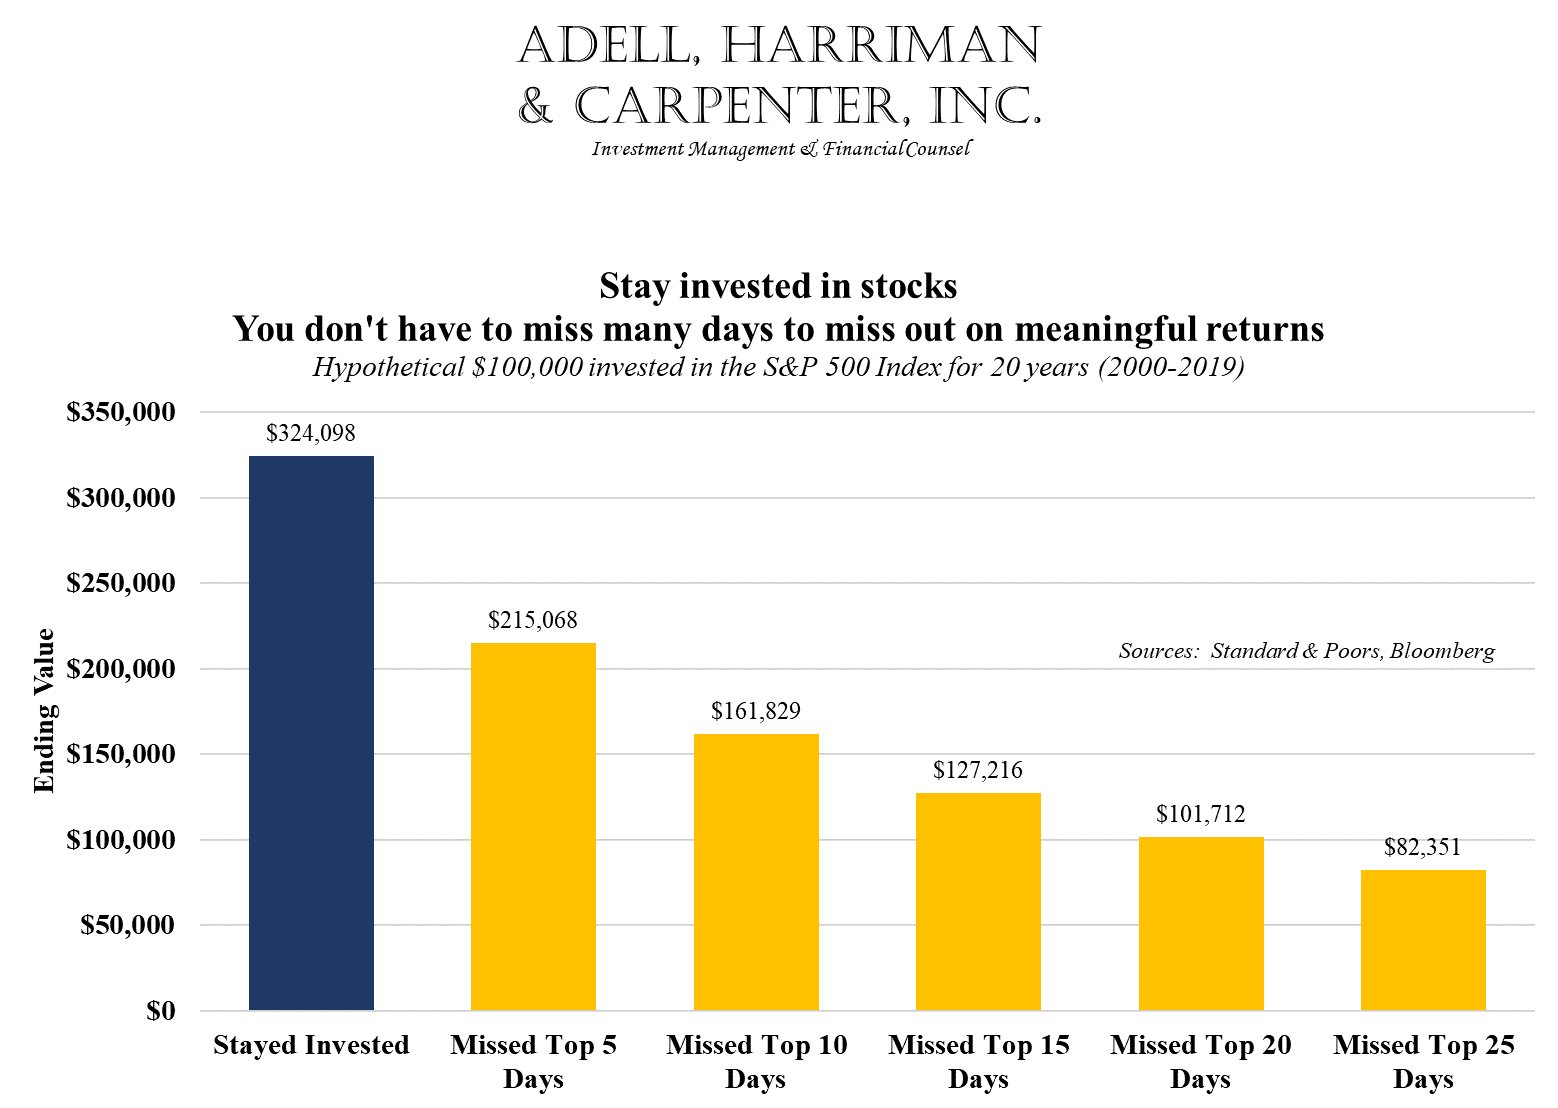 ahc long term investing yield meaningful returns